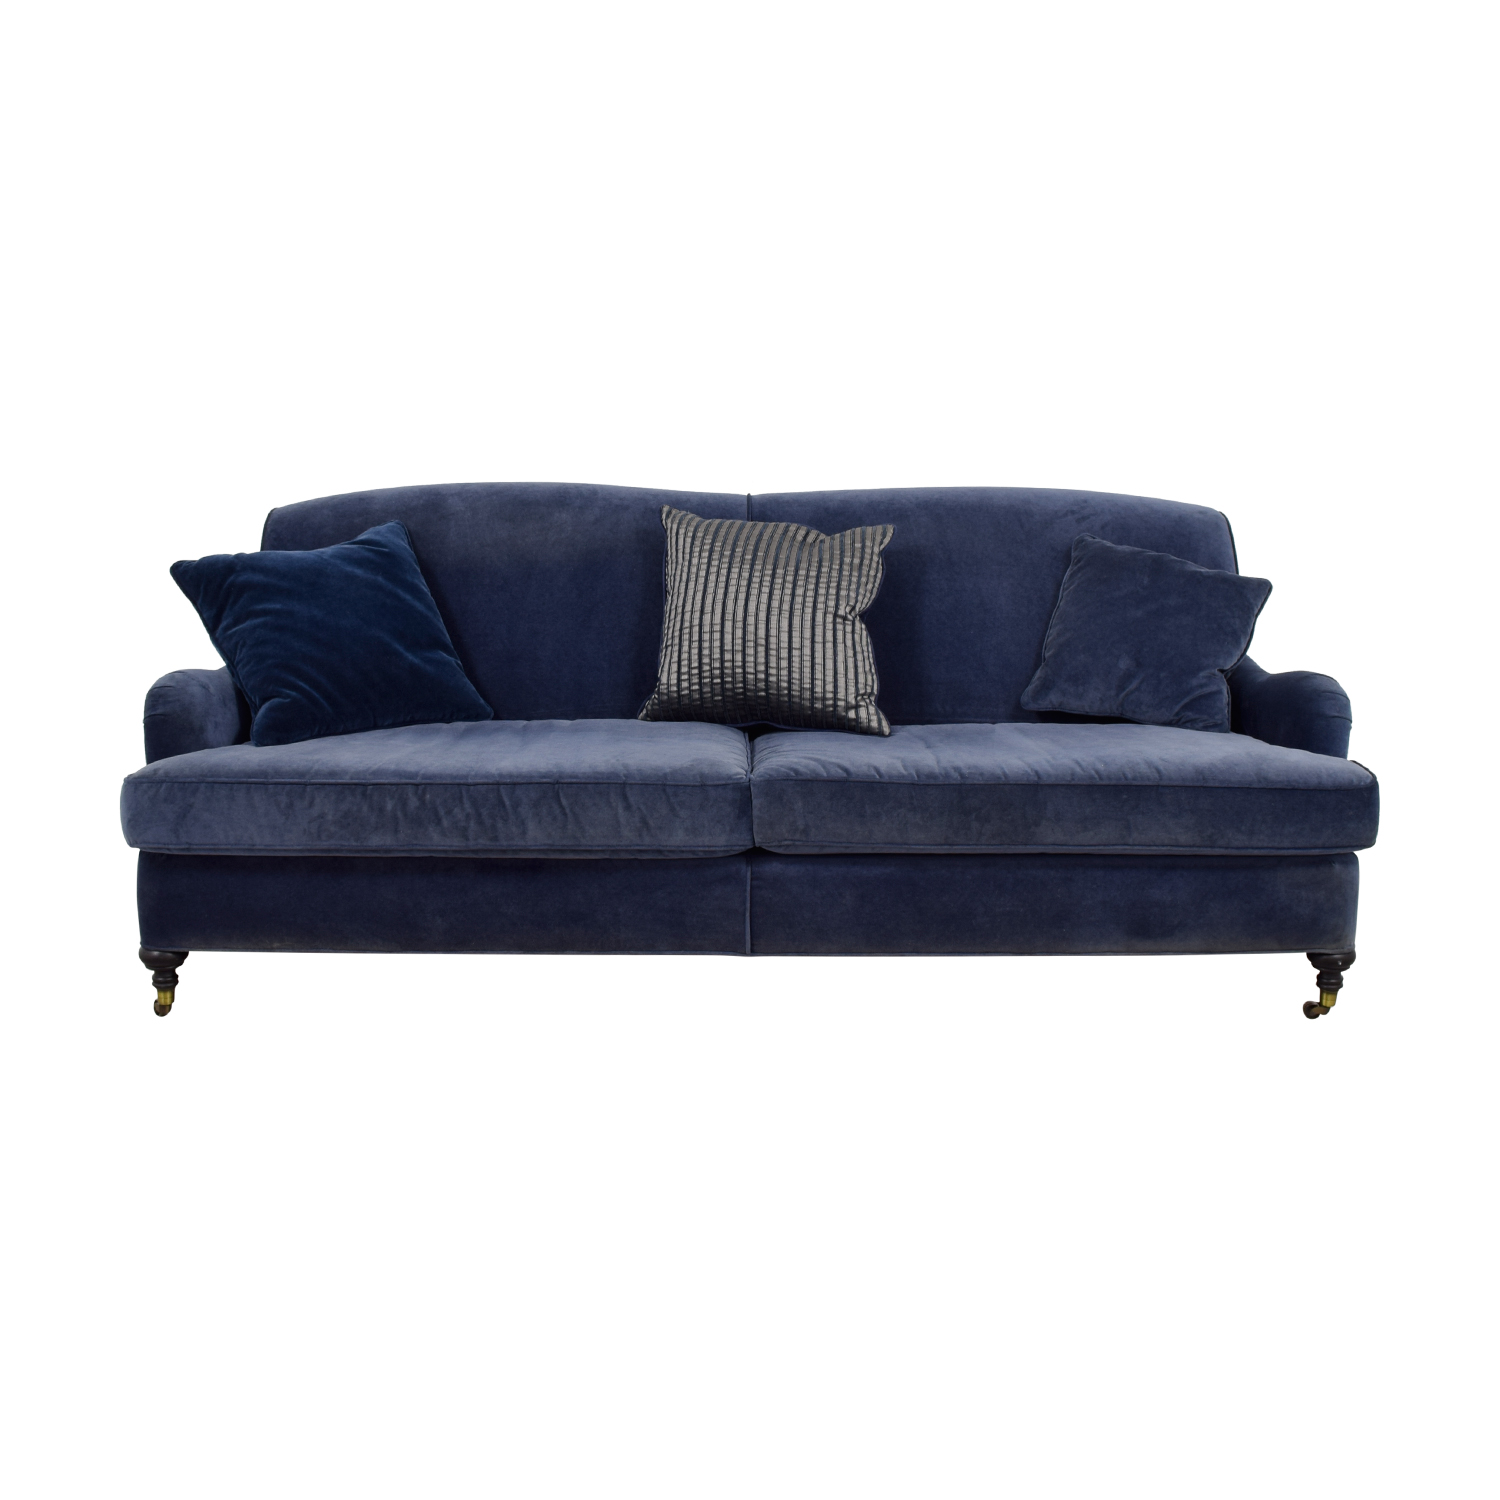 buy Mitchell Gold + Bob Williams Blue Velvet Sofa on Castors Mitchell Gold +Bob Williams